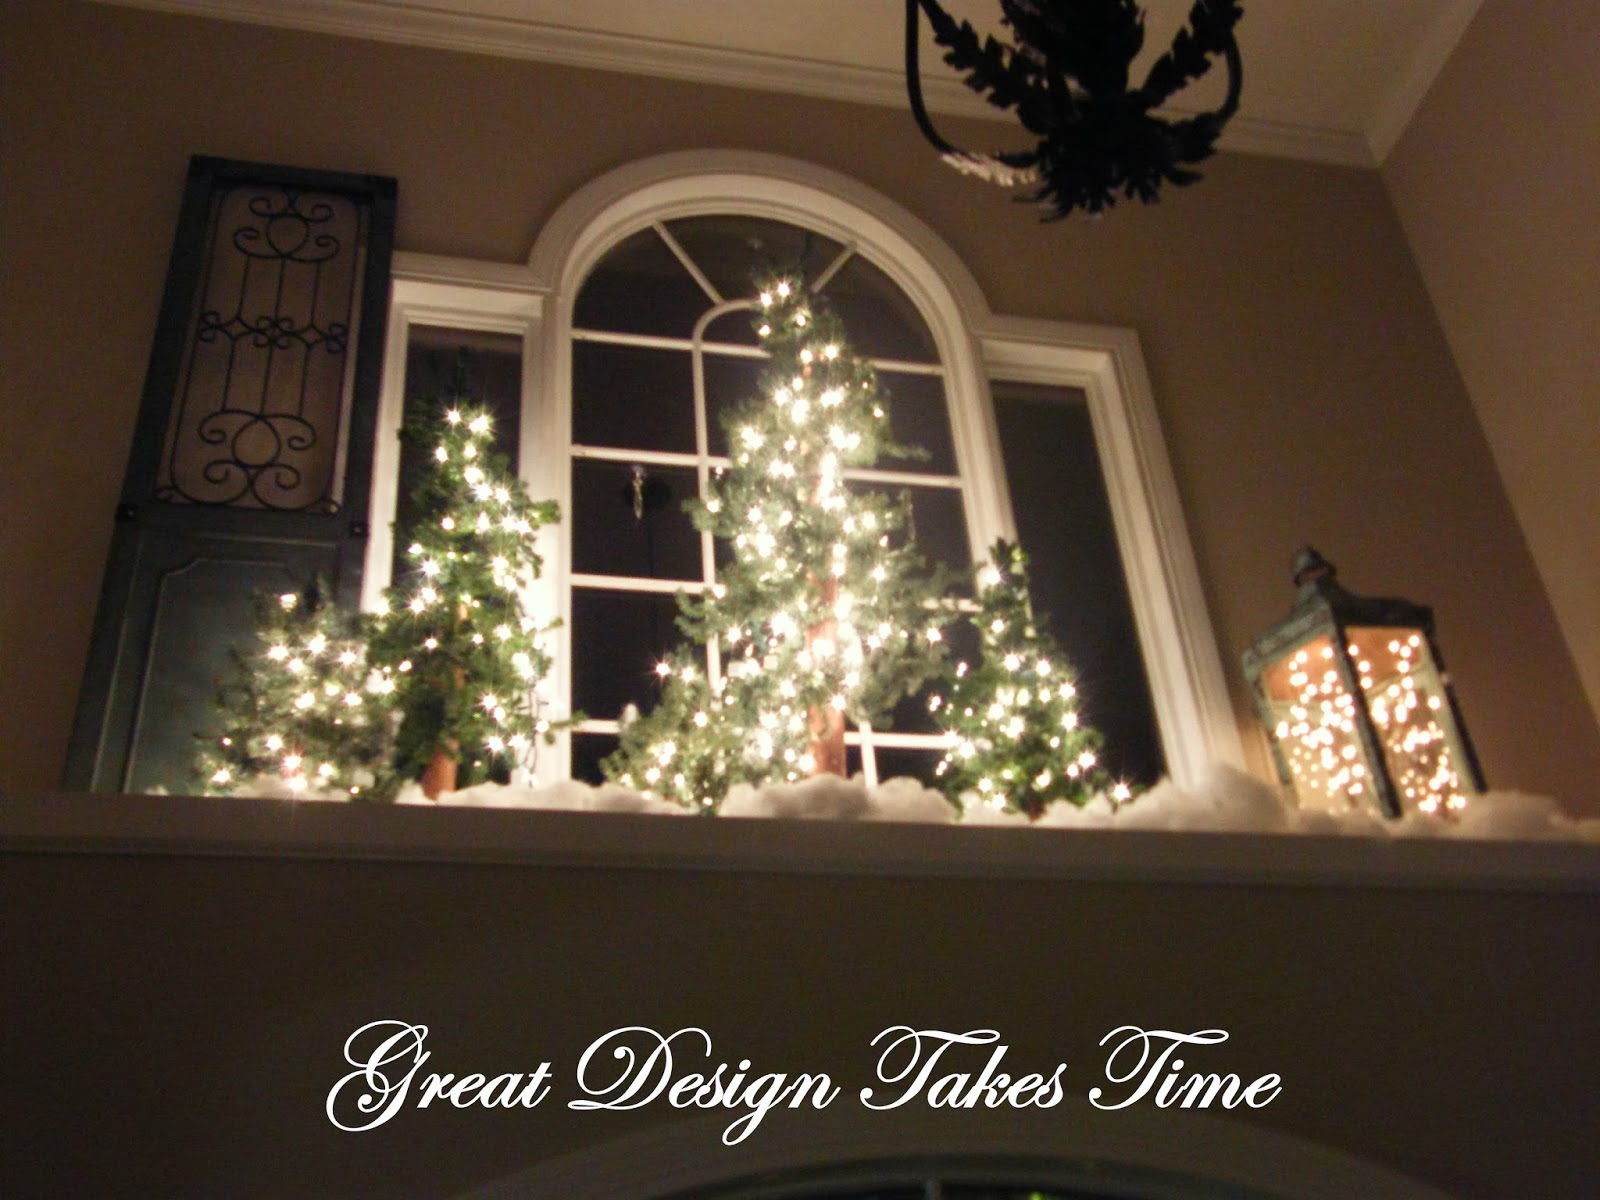 Great Design Takes Time December 2013